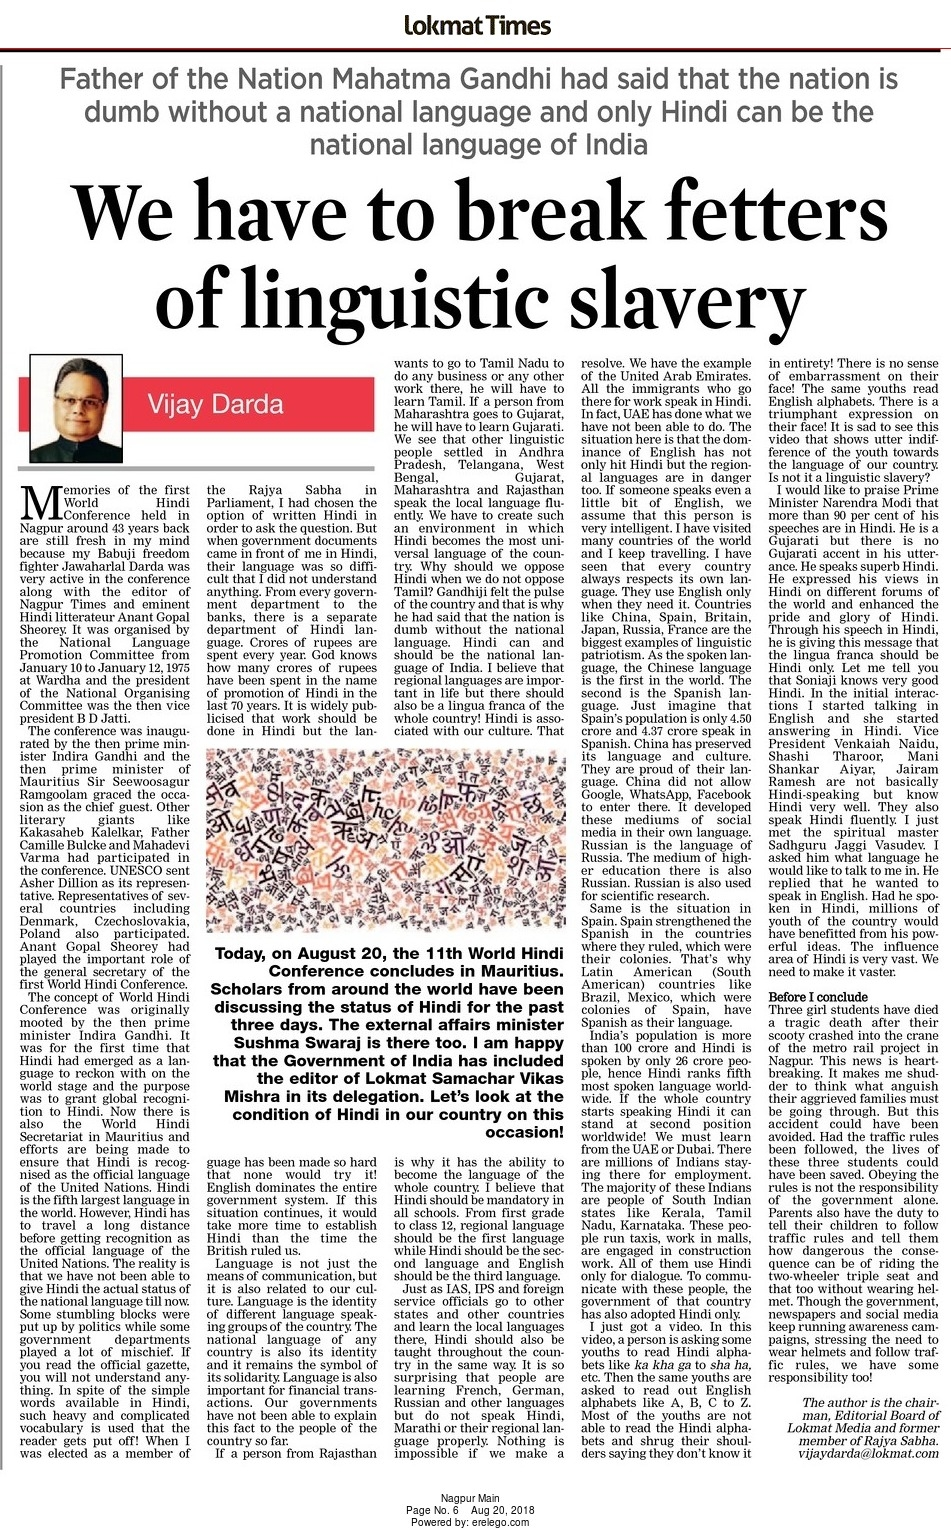 We have to break fetters of linguistic slavery